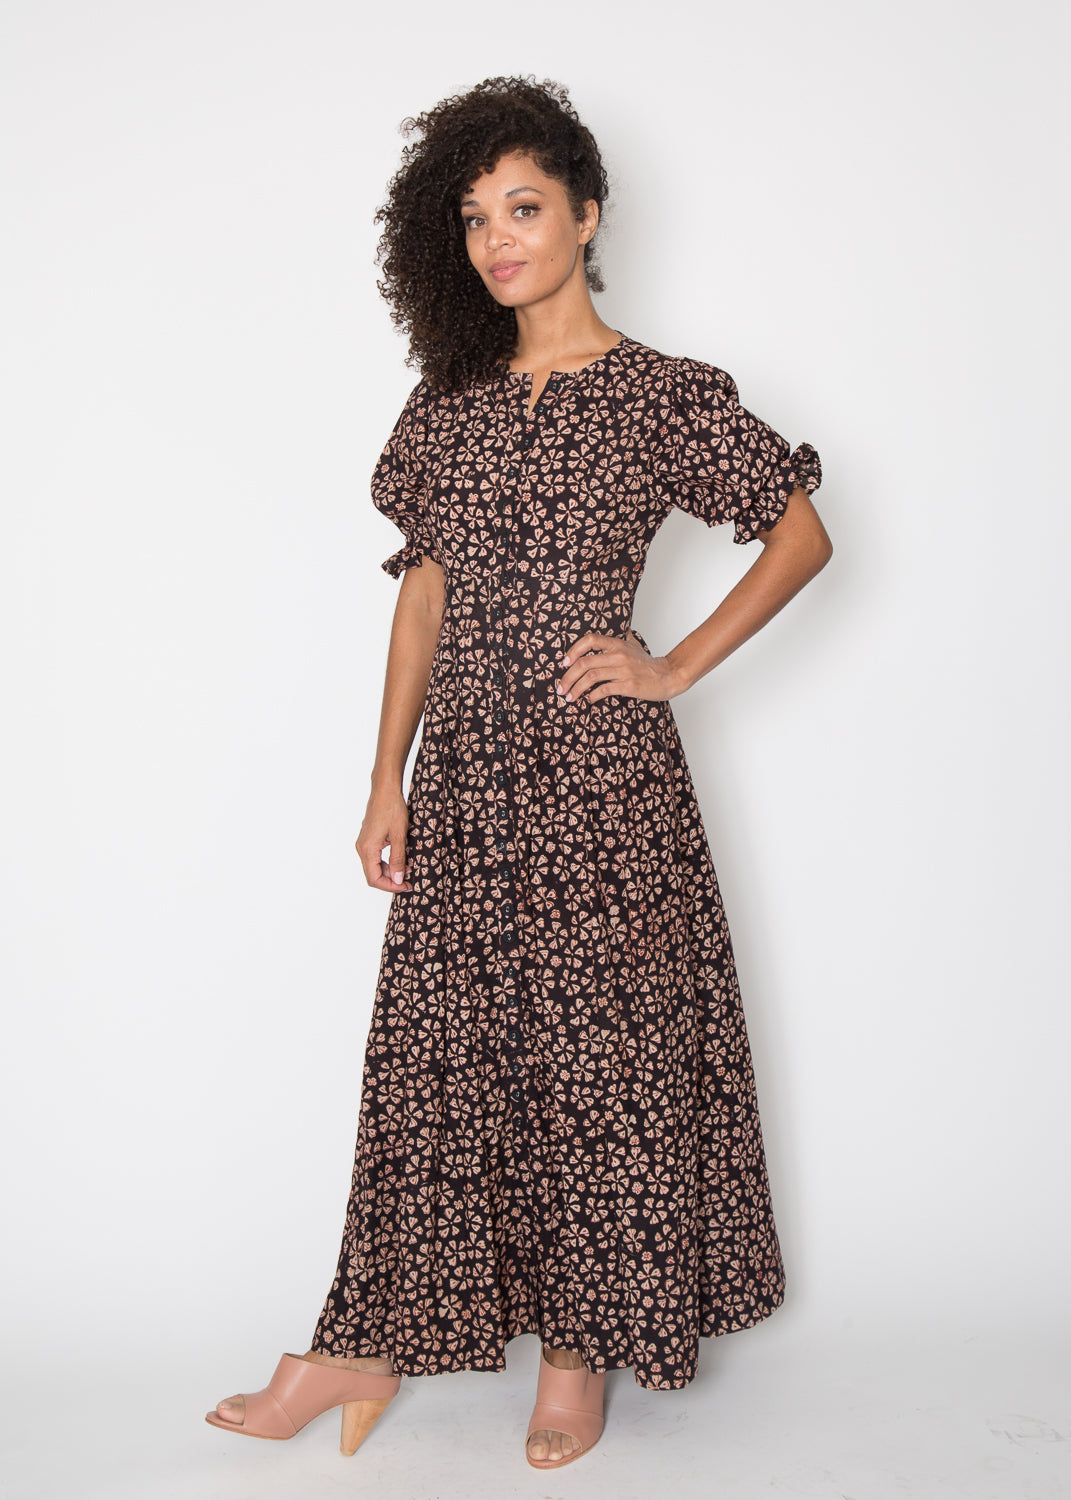 AISH Aliyah Long Dress